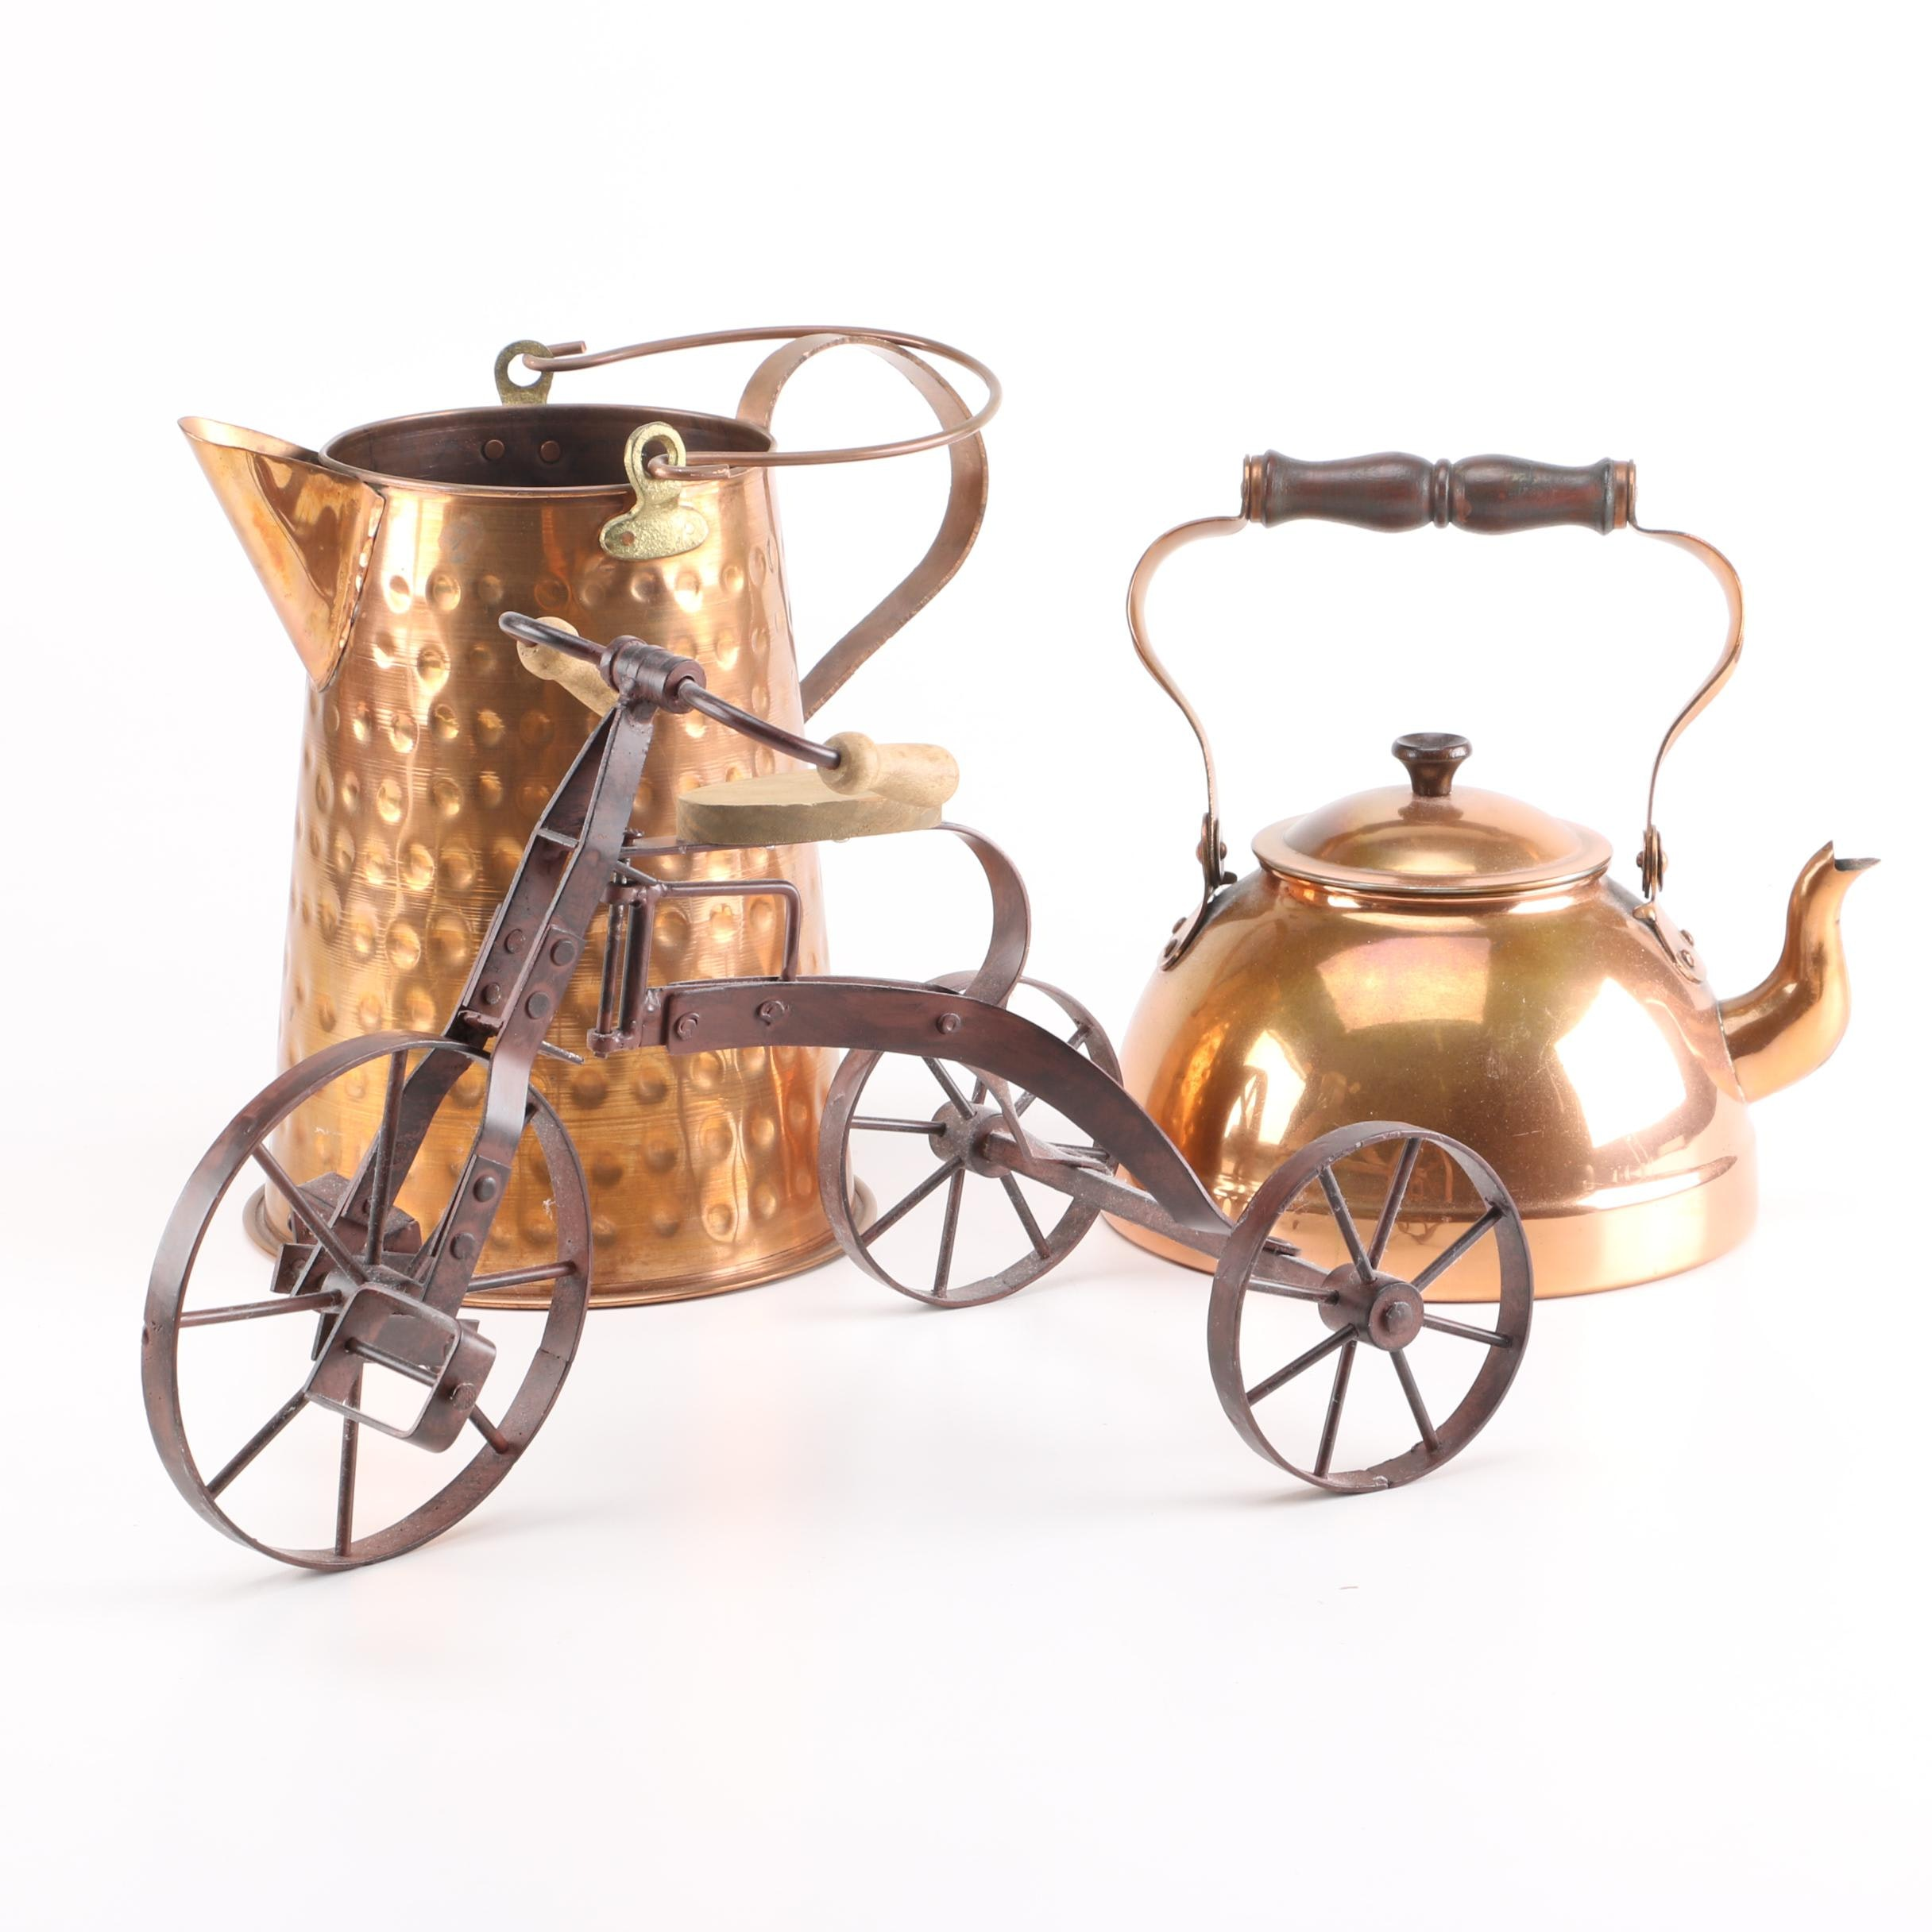 Copper Kettles and Decor